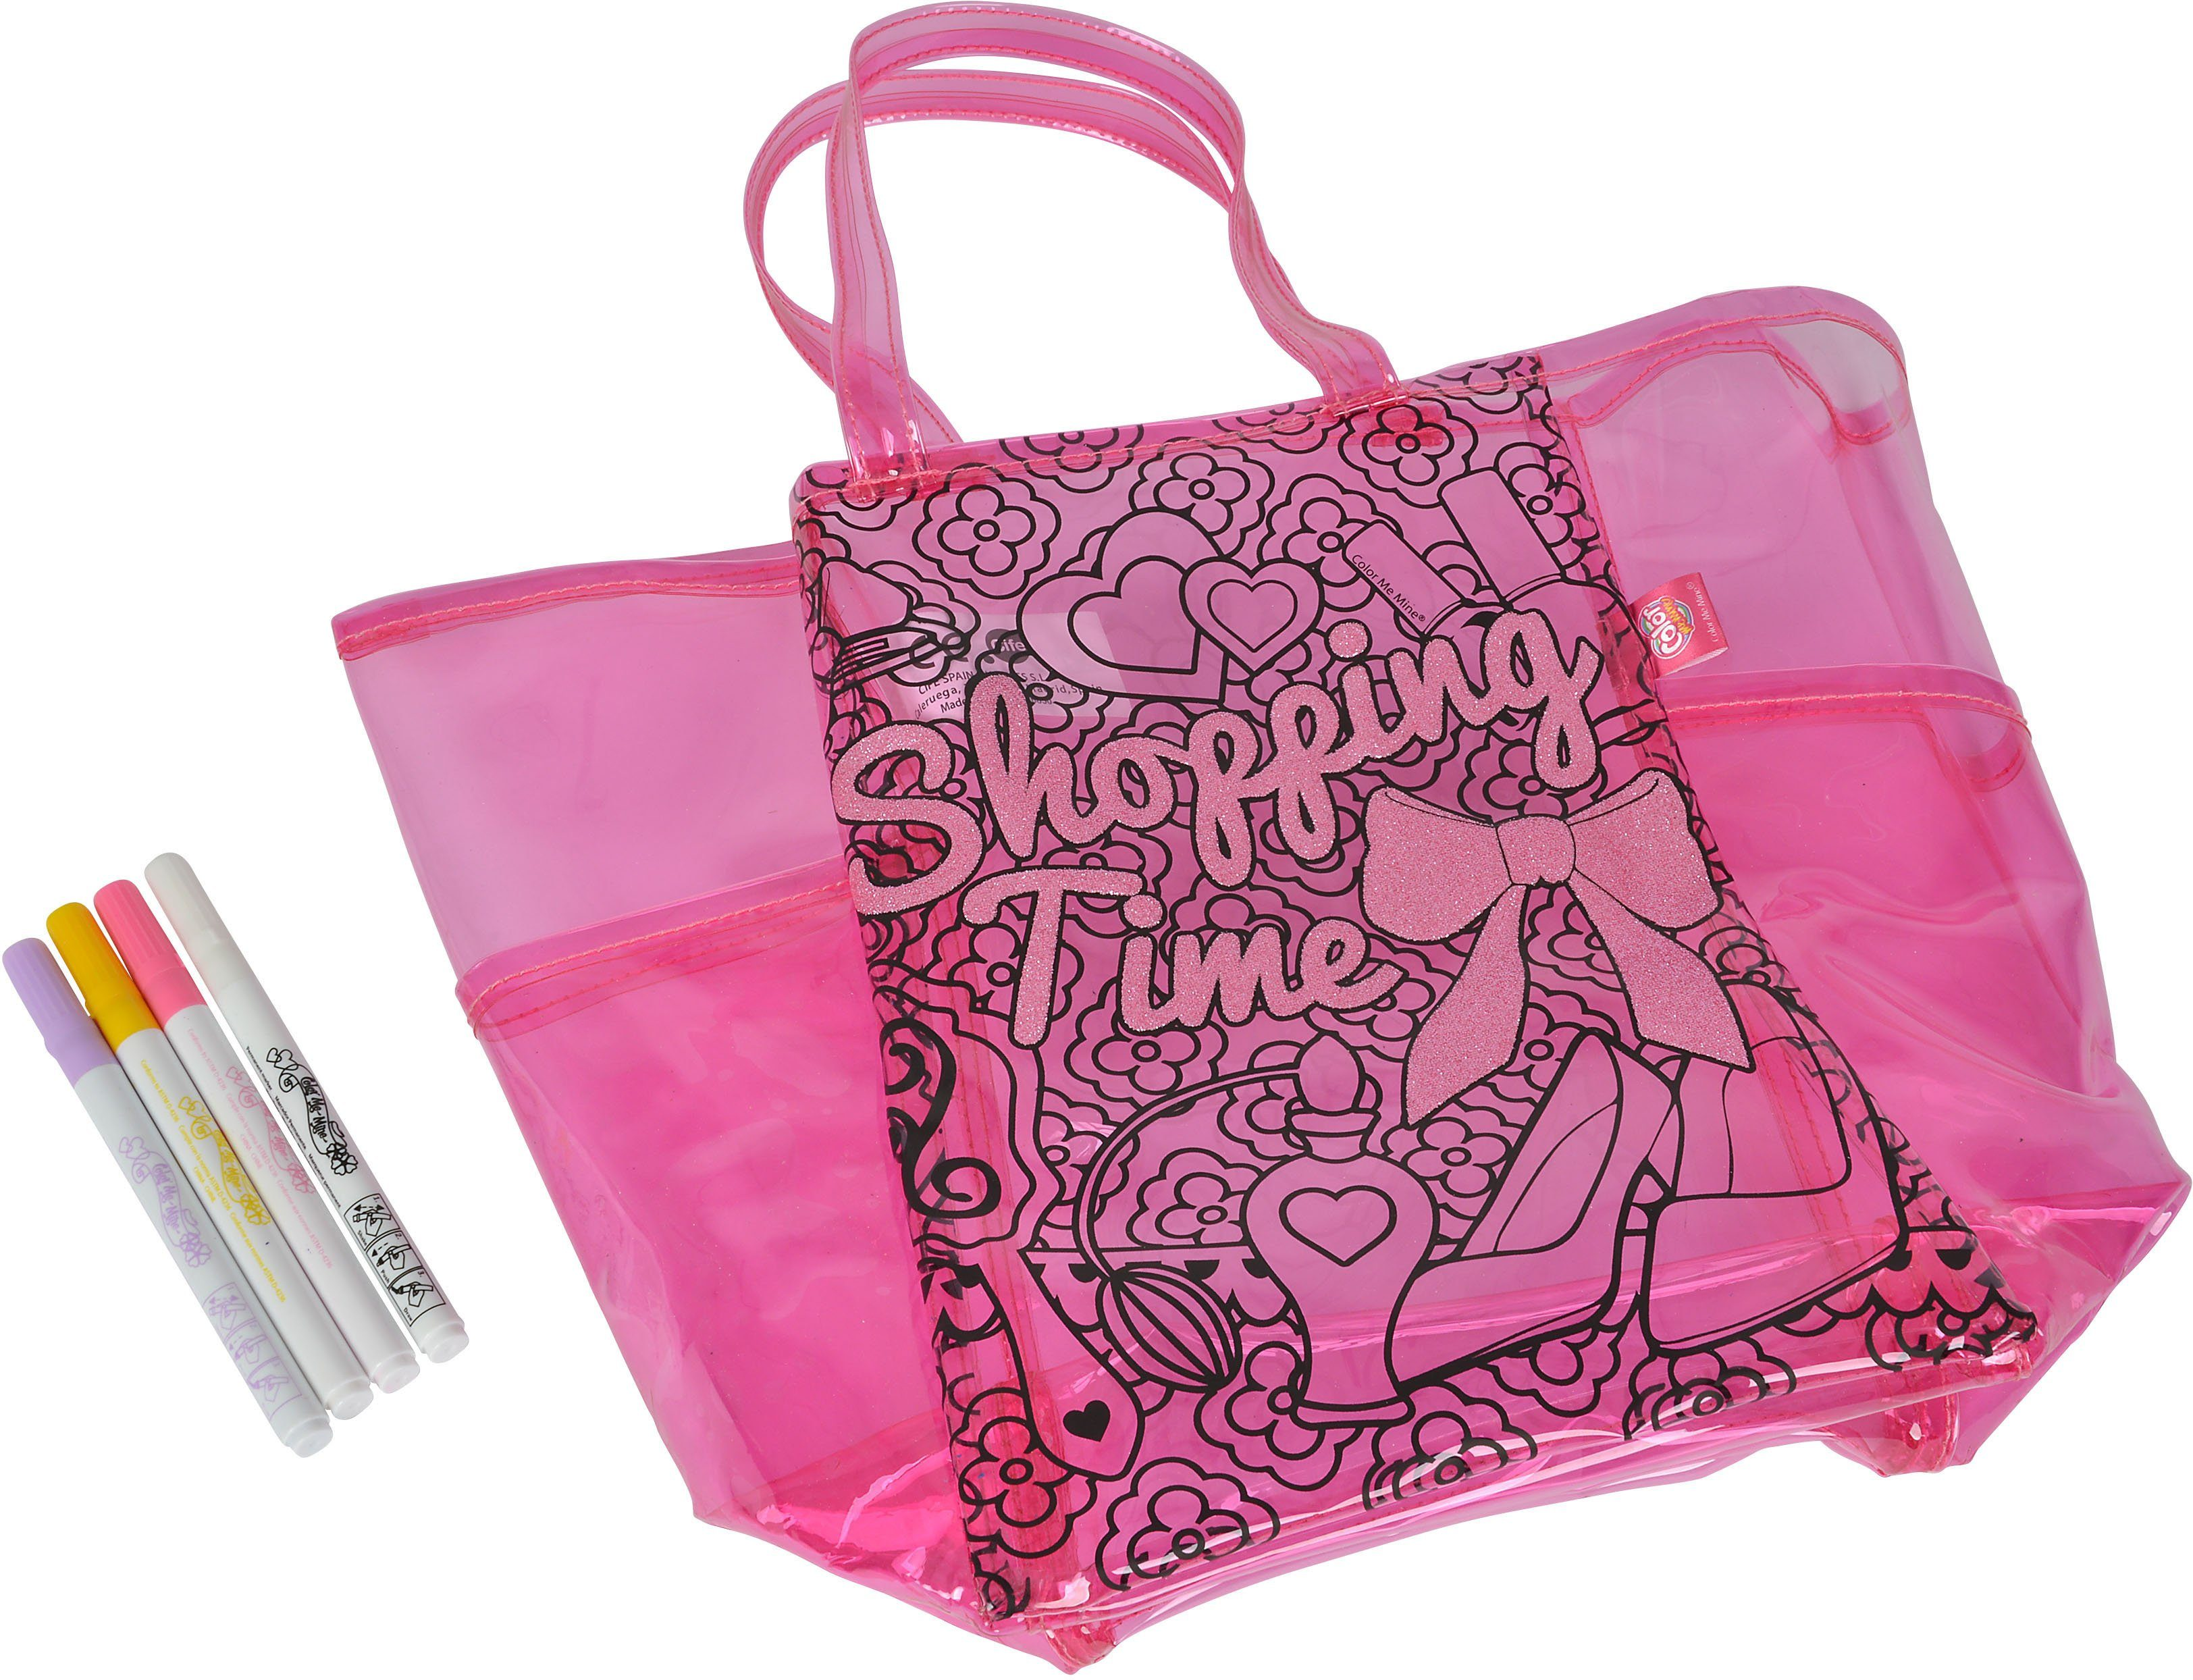 Simba Tasche zum Bemalen, »Color me mine, Diamond Sunshine Fashionbag«